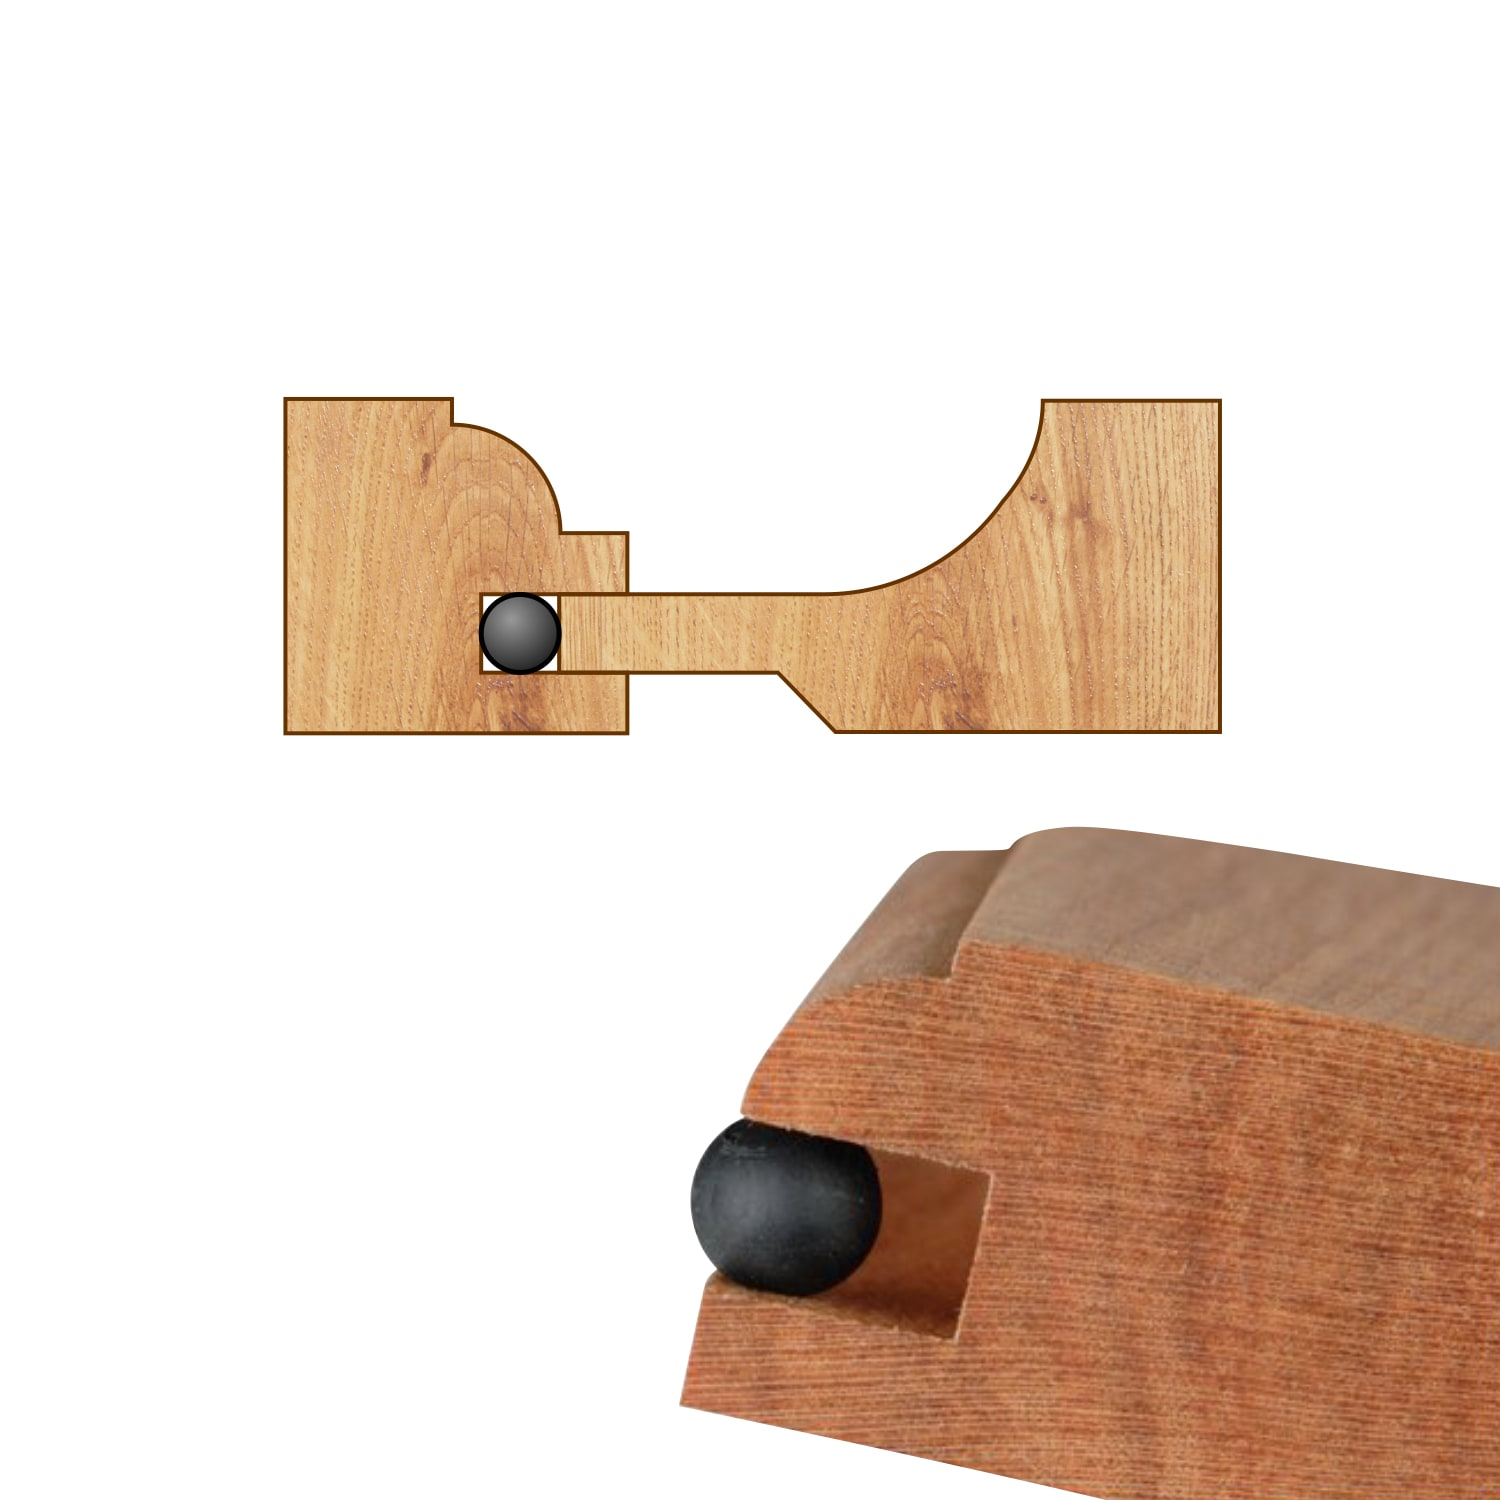 Shop 1000 Pack Space Balls Raised Panel Cabinet Door Spacers For 1 4 Groove